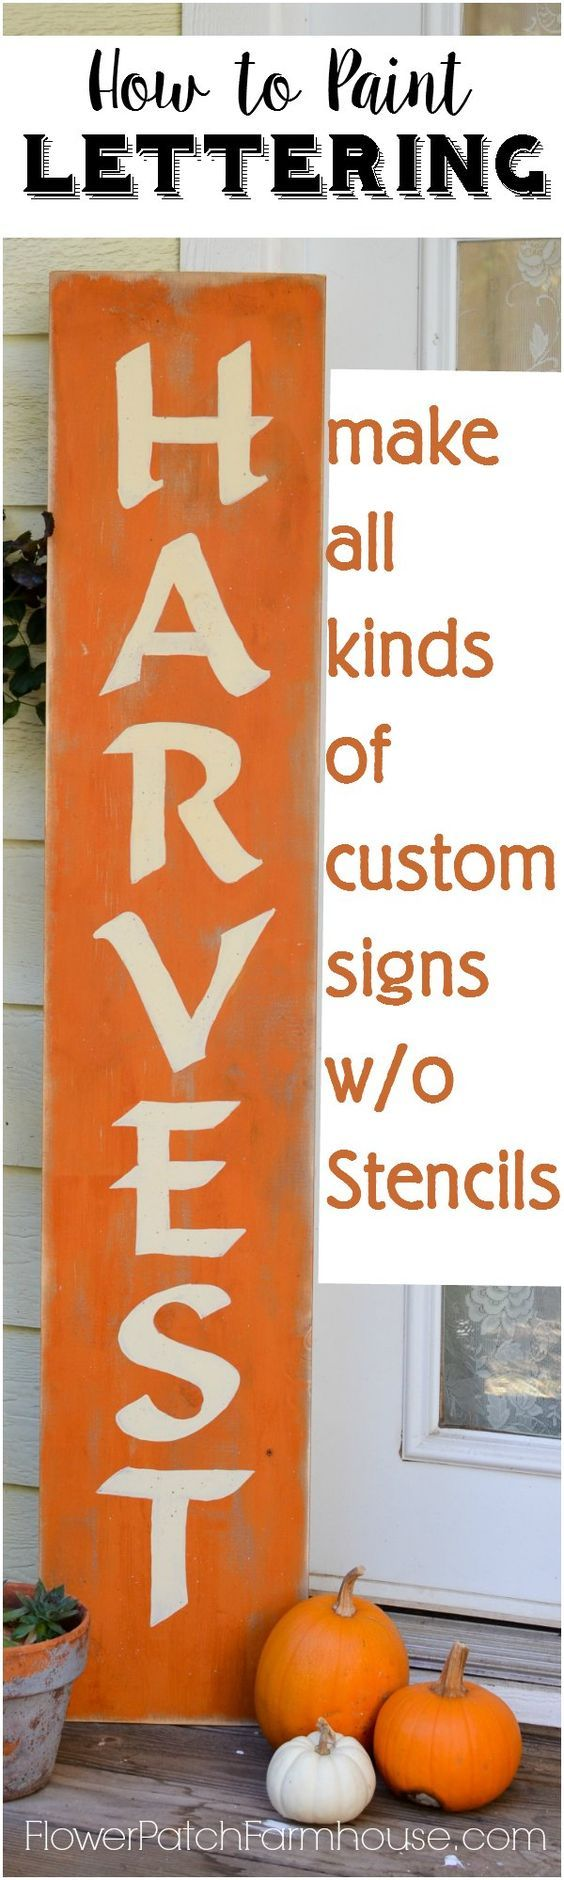 How to Hand Paint Lettering to make all sorts of custom signs, pallet projects, rustic home decor and diy crafts, this Harvest sign lettering is available as a download.